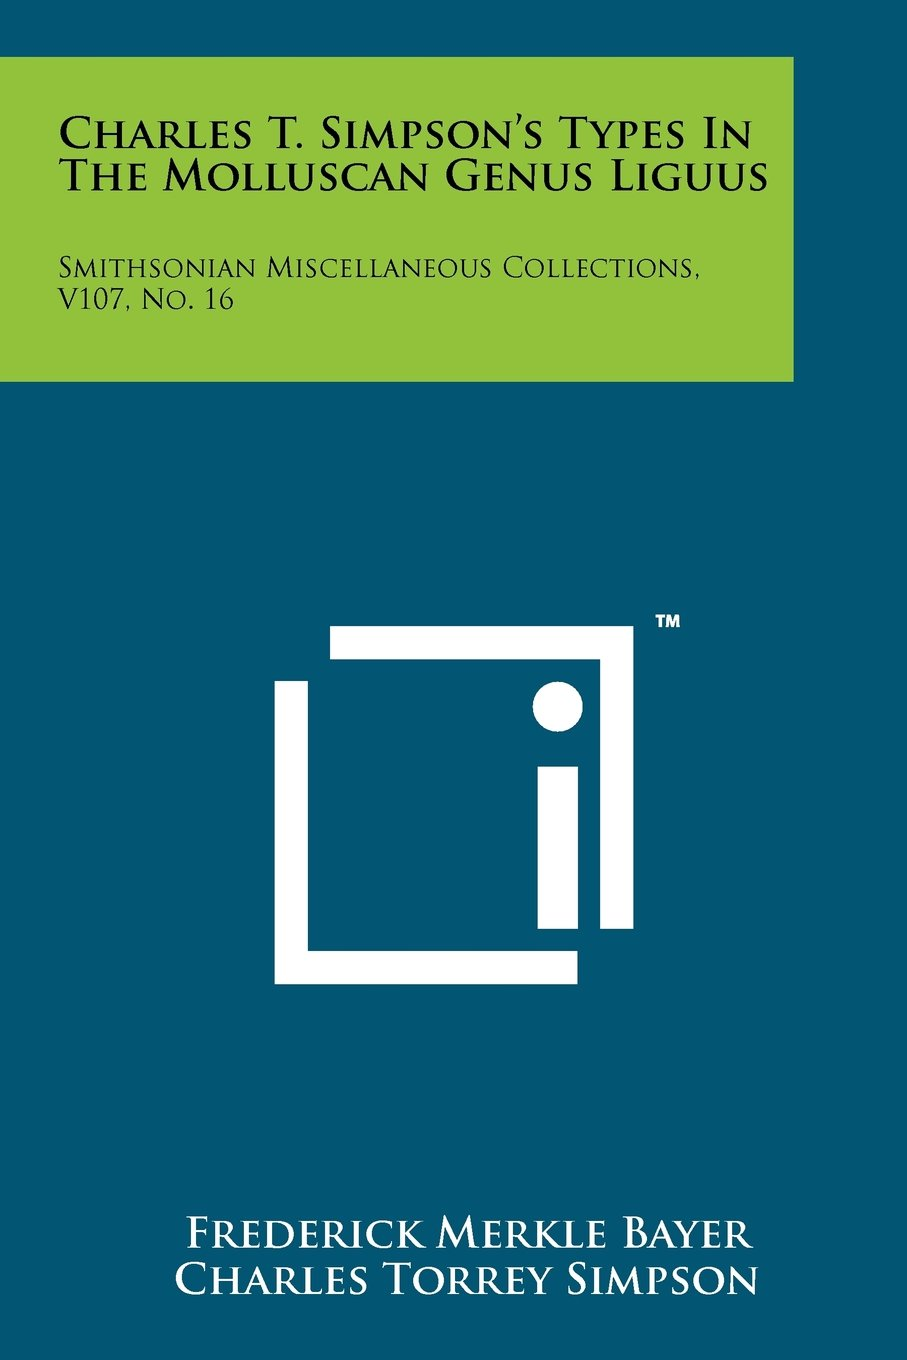 Download Charles T. Simpson's Types In The Molluscan Genus Liguus: Smithsonian Miscellaneous Collections, V107, No. 16 pdf